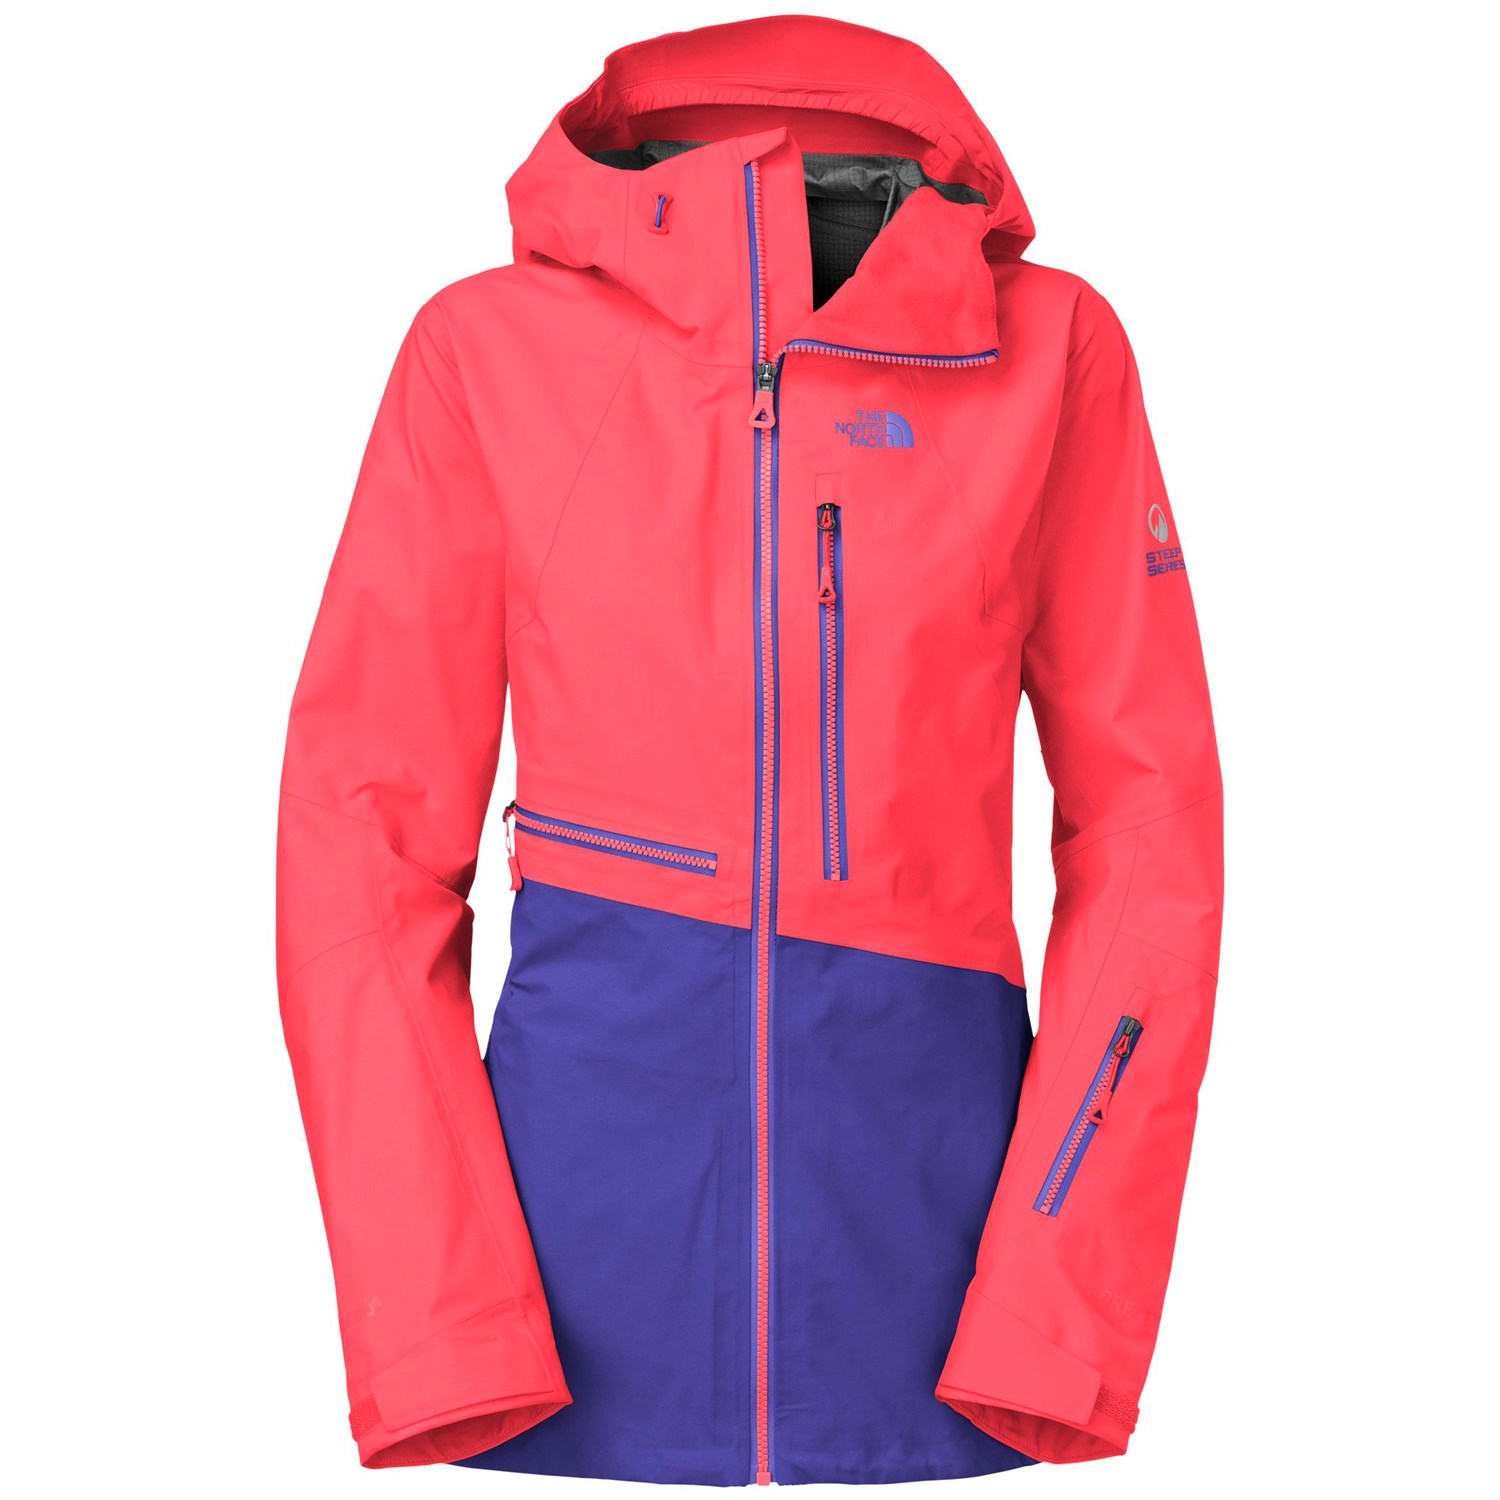 Outlet Shop Clothing The North Face Womens North Face Clearance France